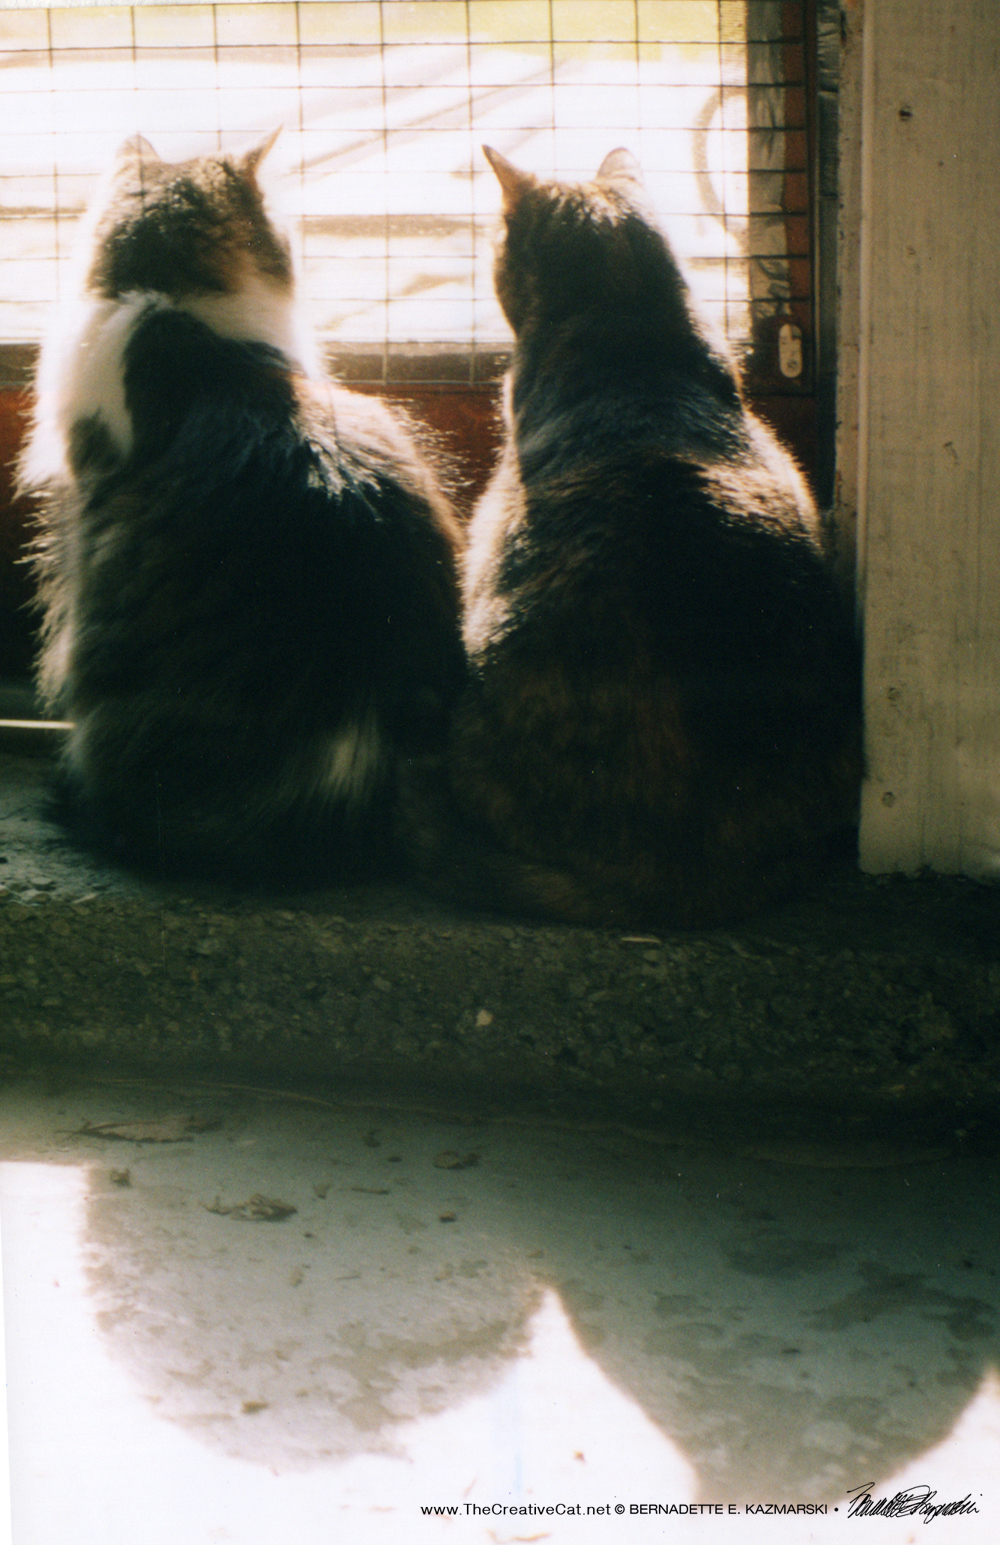 In 2002, Cookie and Sophie sit side by side and look out the door.